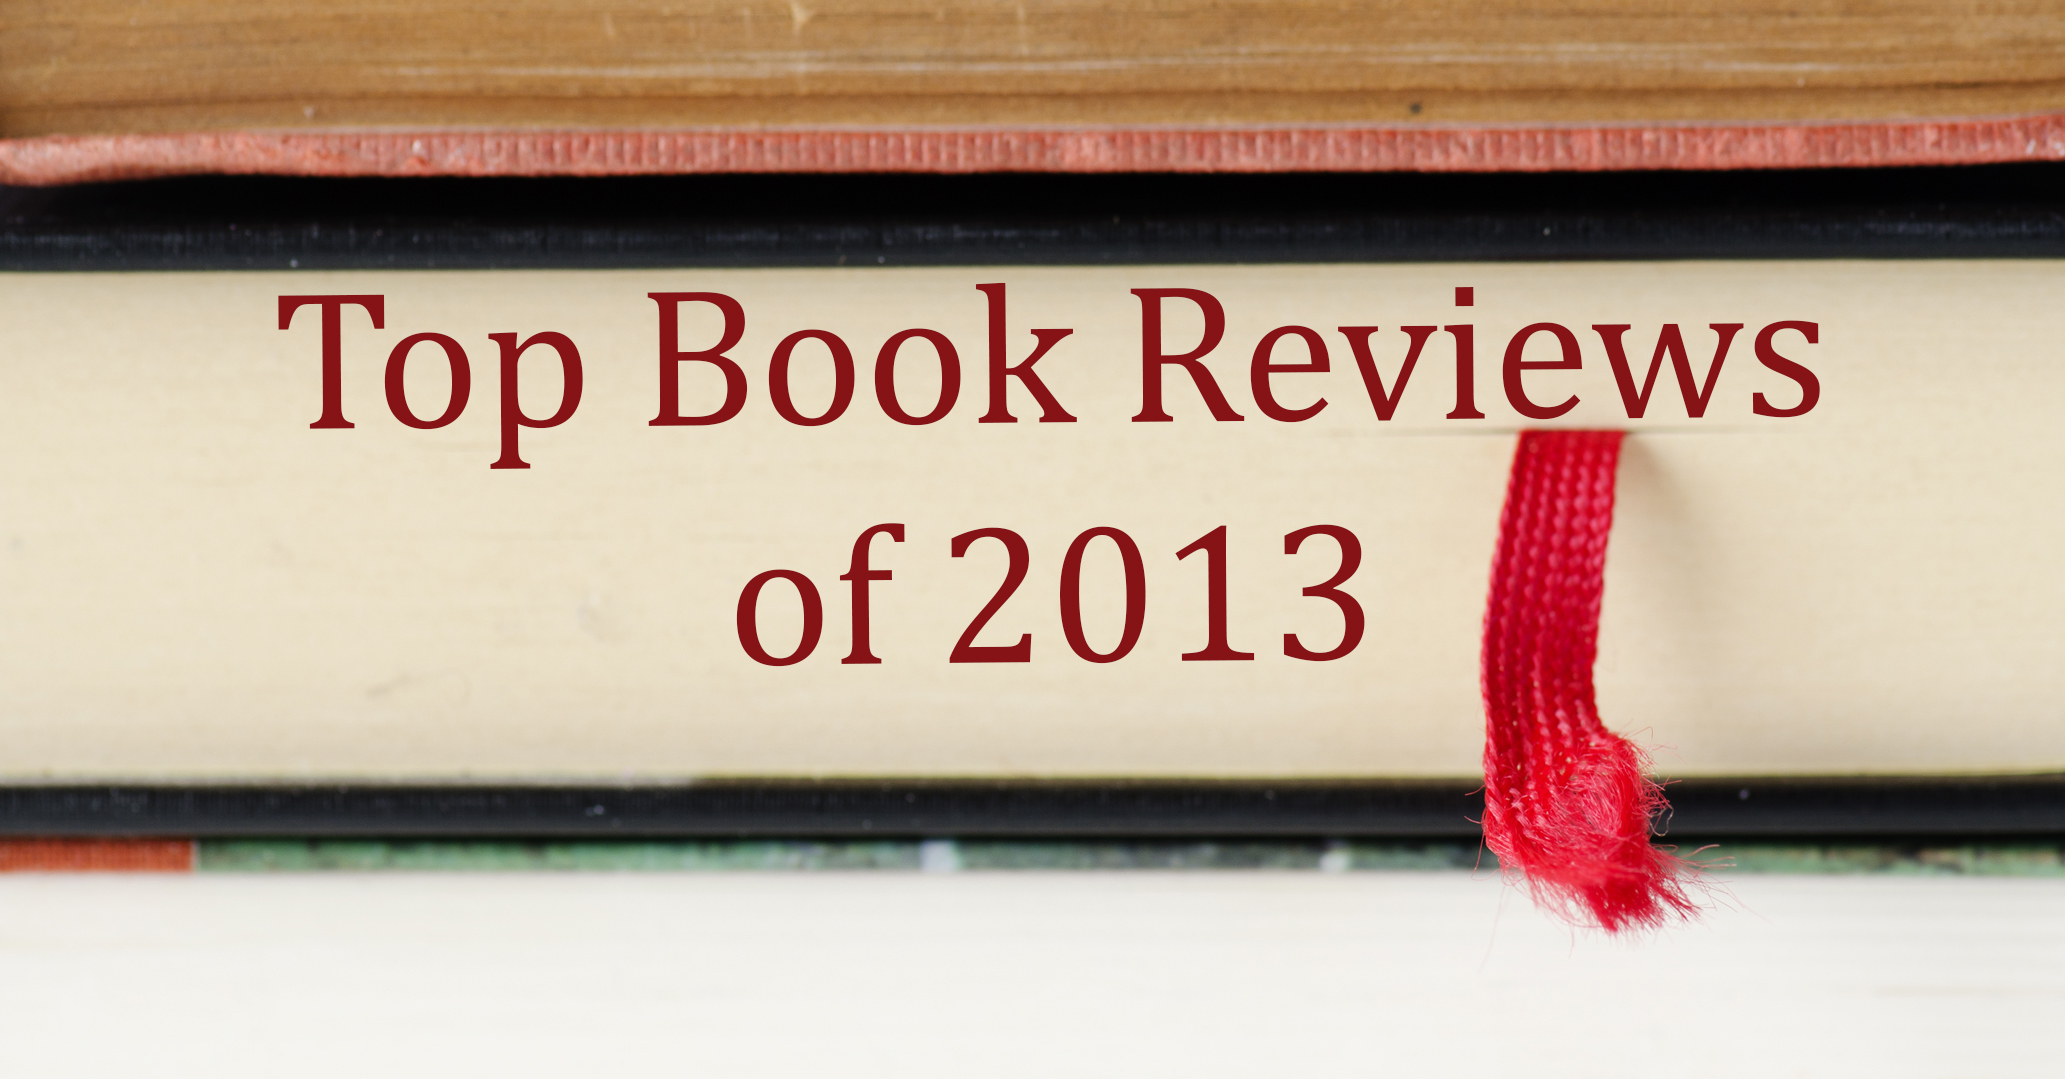 TopBookReviews